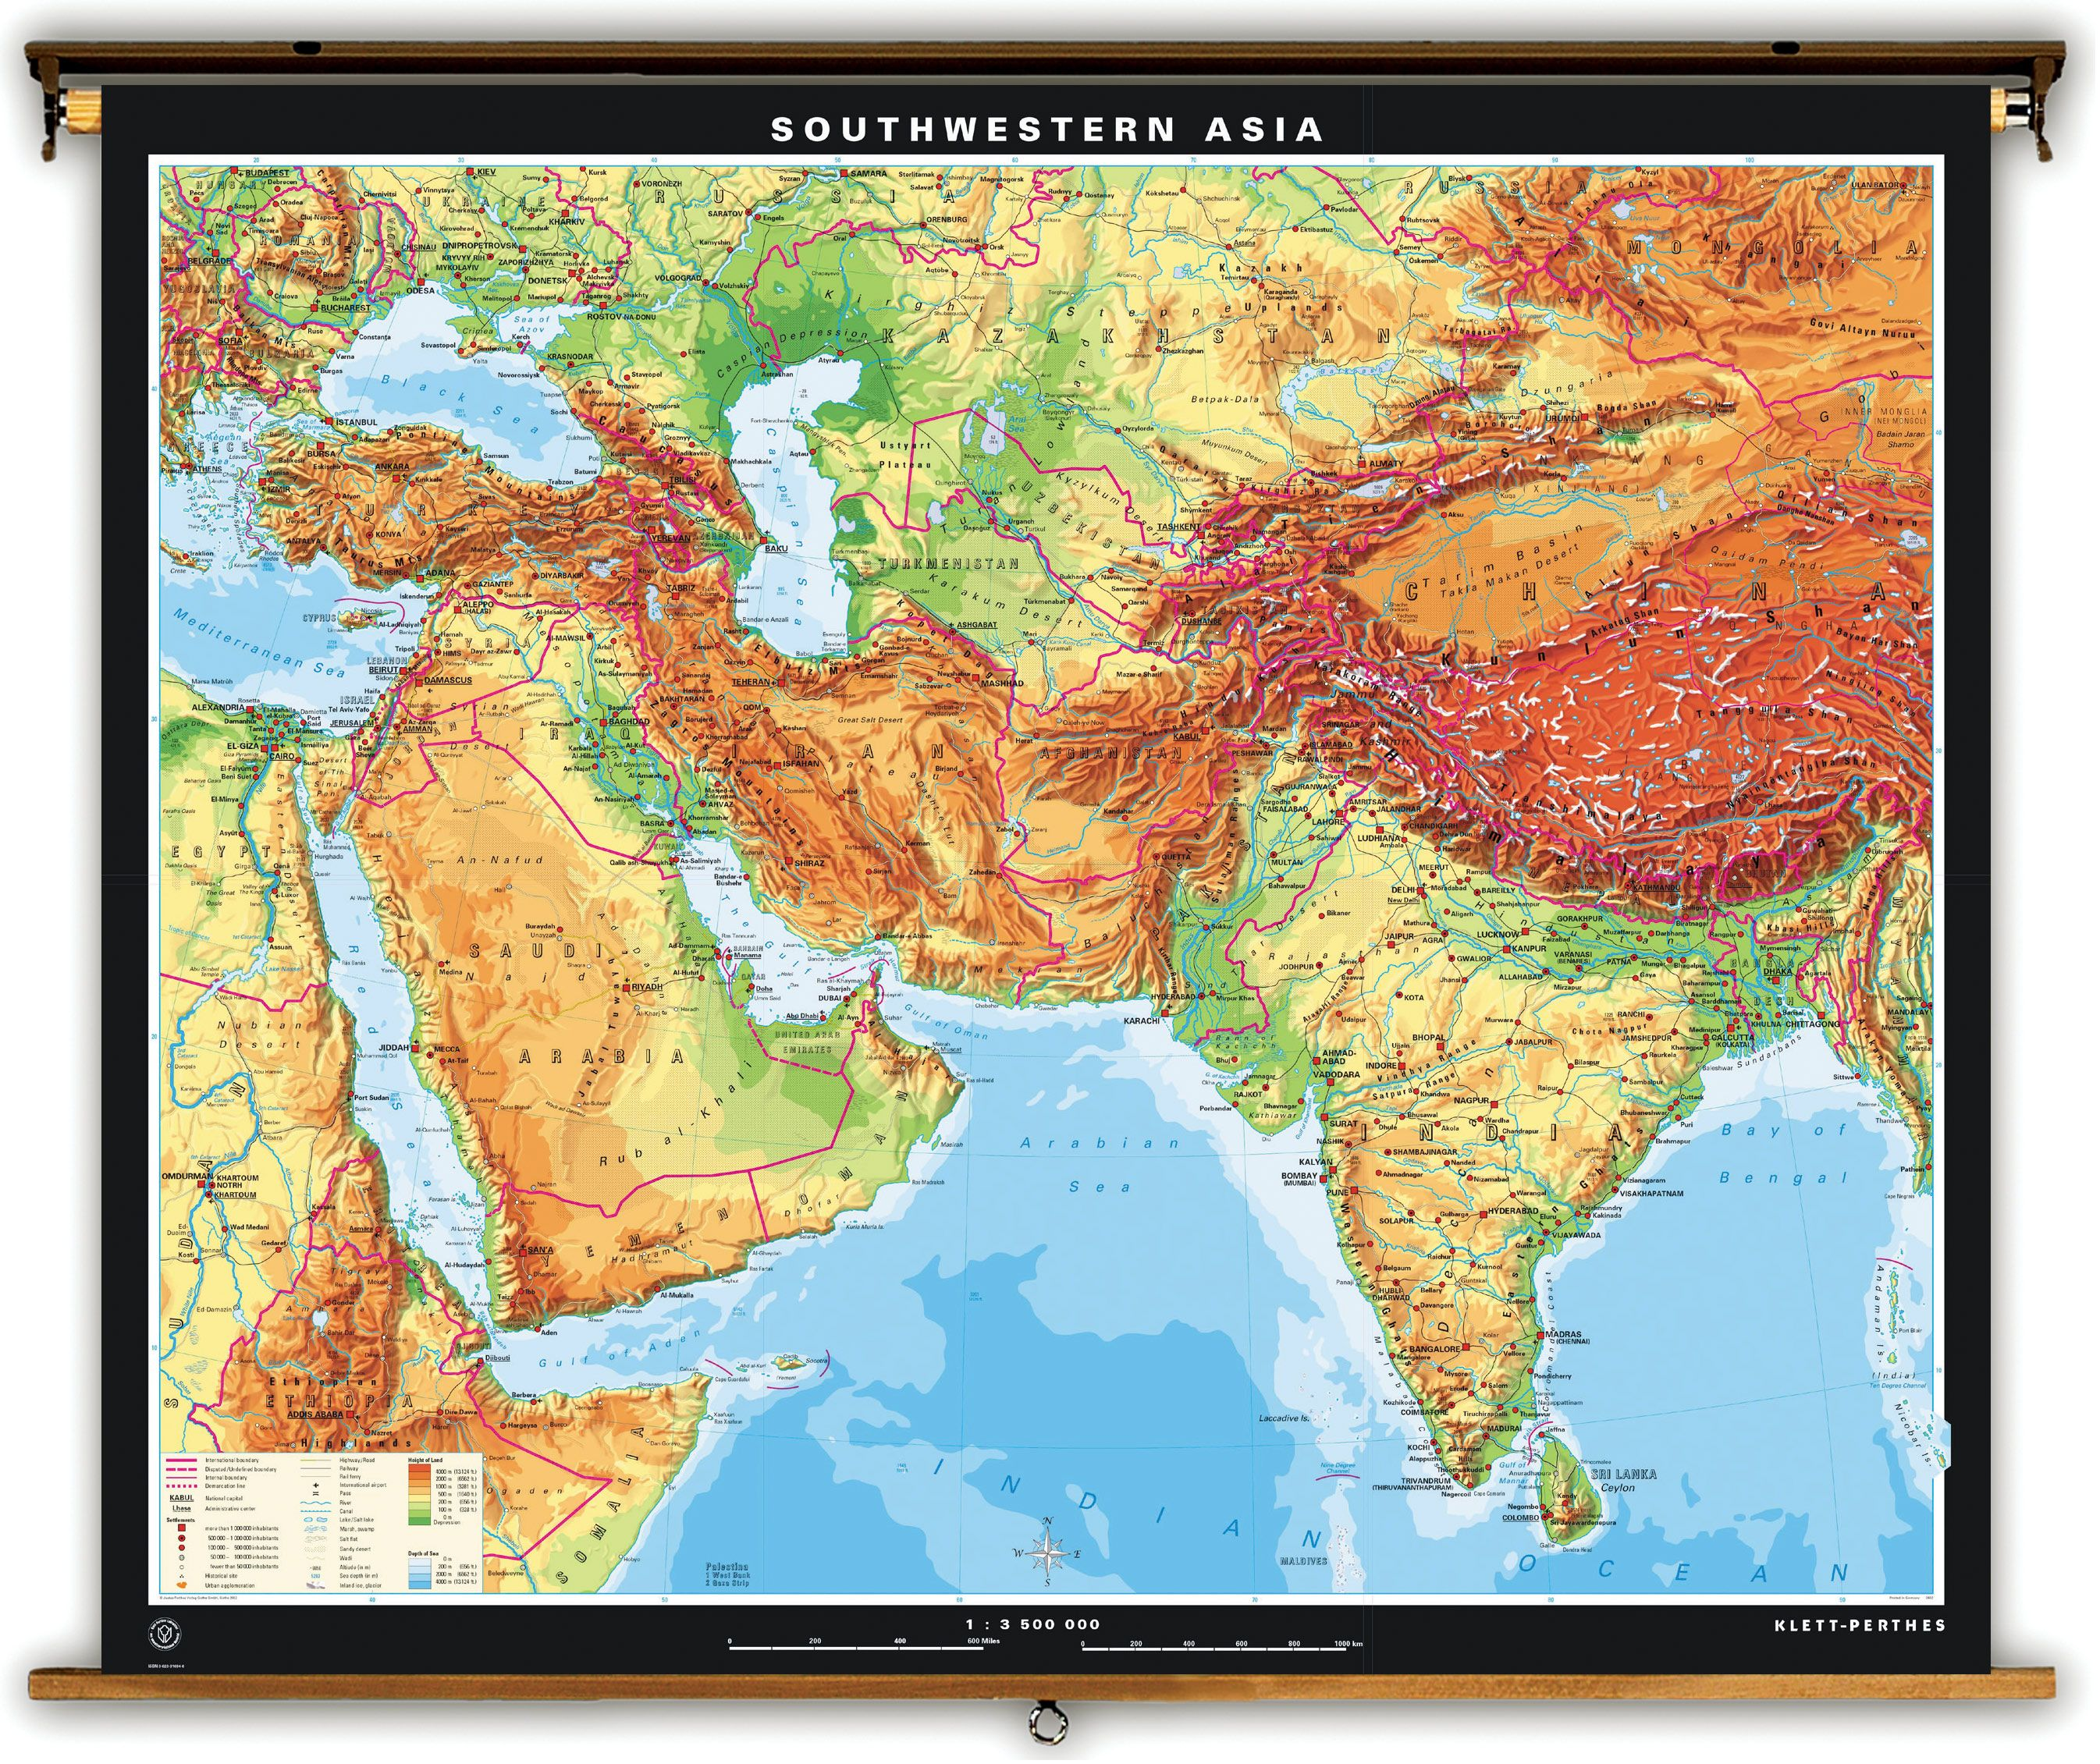 physical geography map of southwest asia Google Search Jeff Pinterest